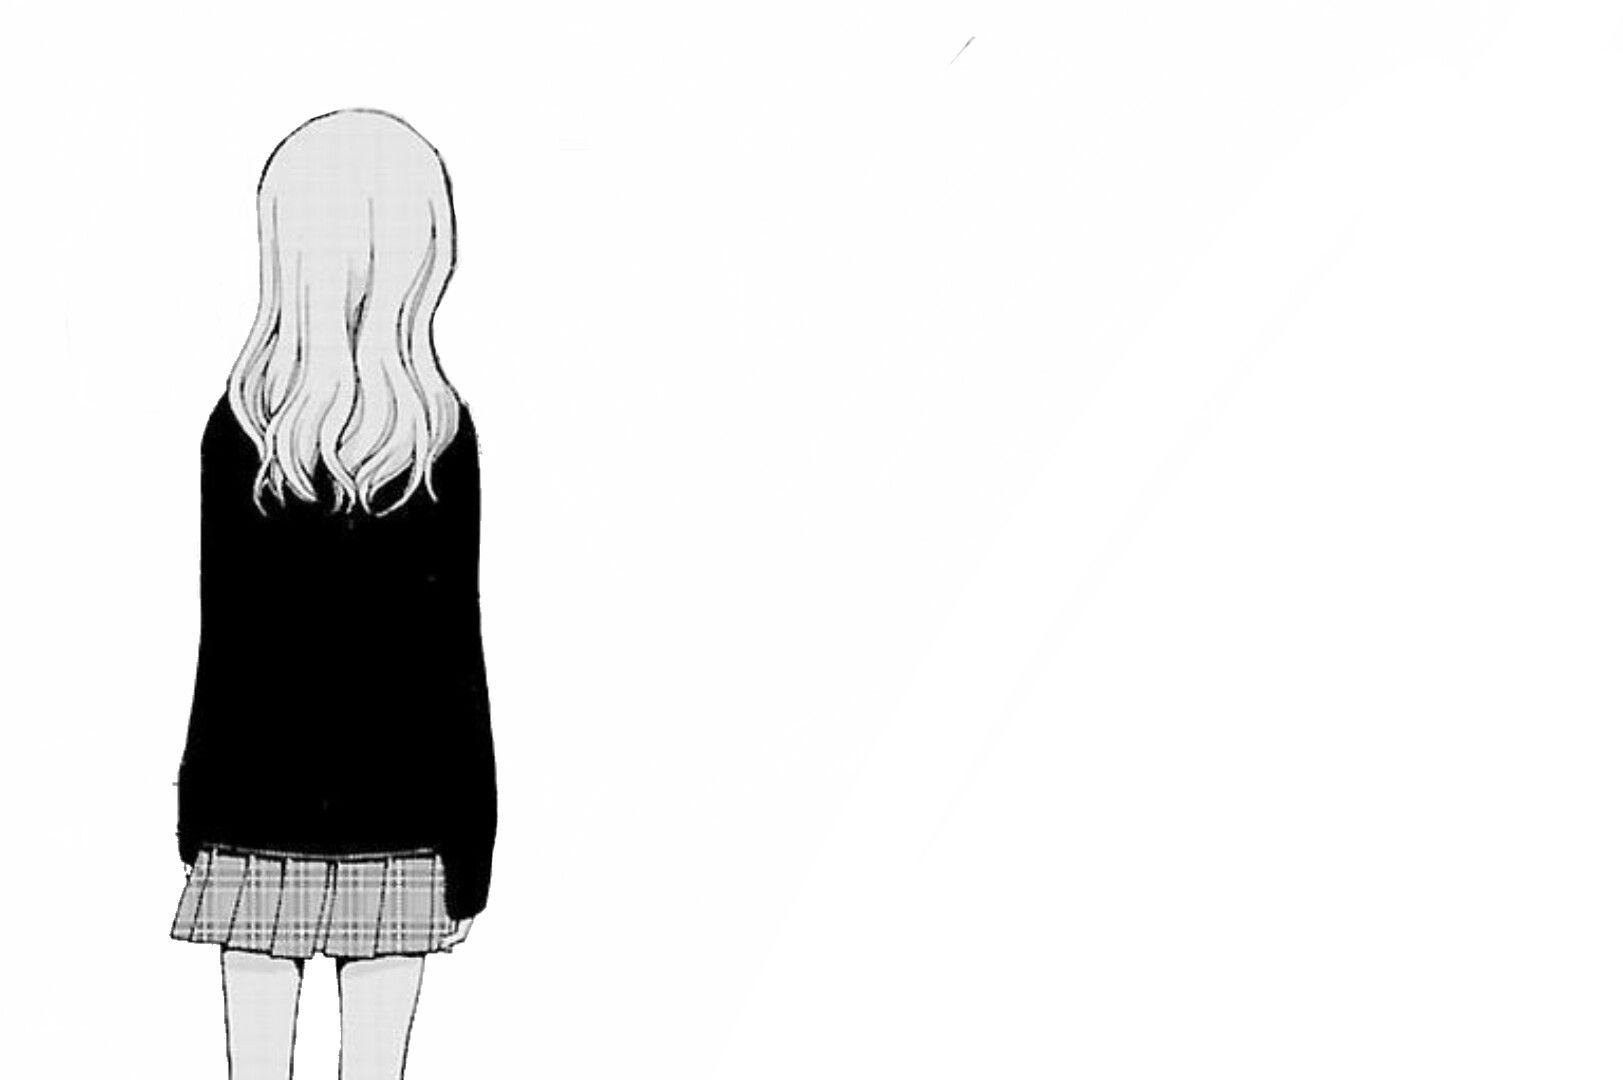 Hakoniwa telepathy manga shoujo girl sad cute nice hairstyle white hair tumblr shocking cry crying style